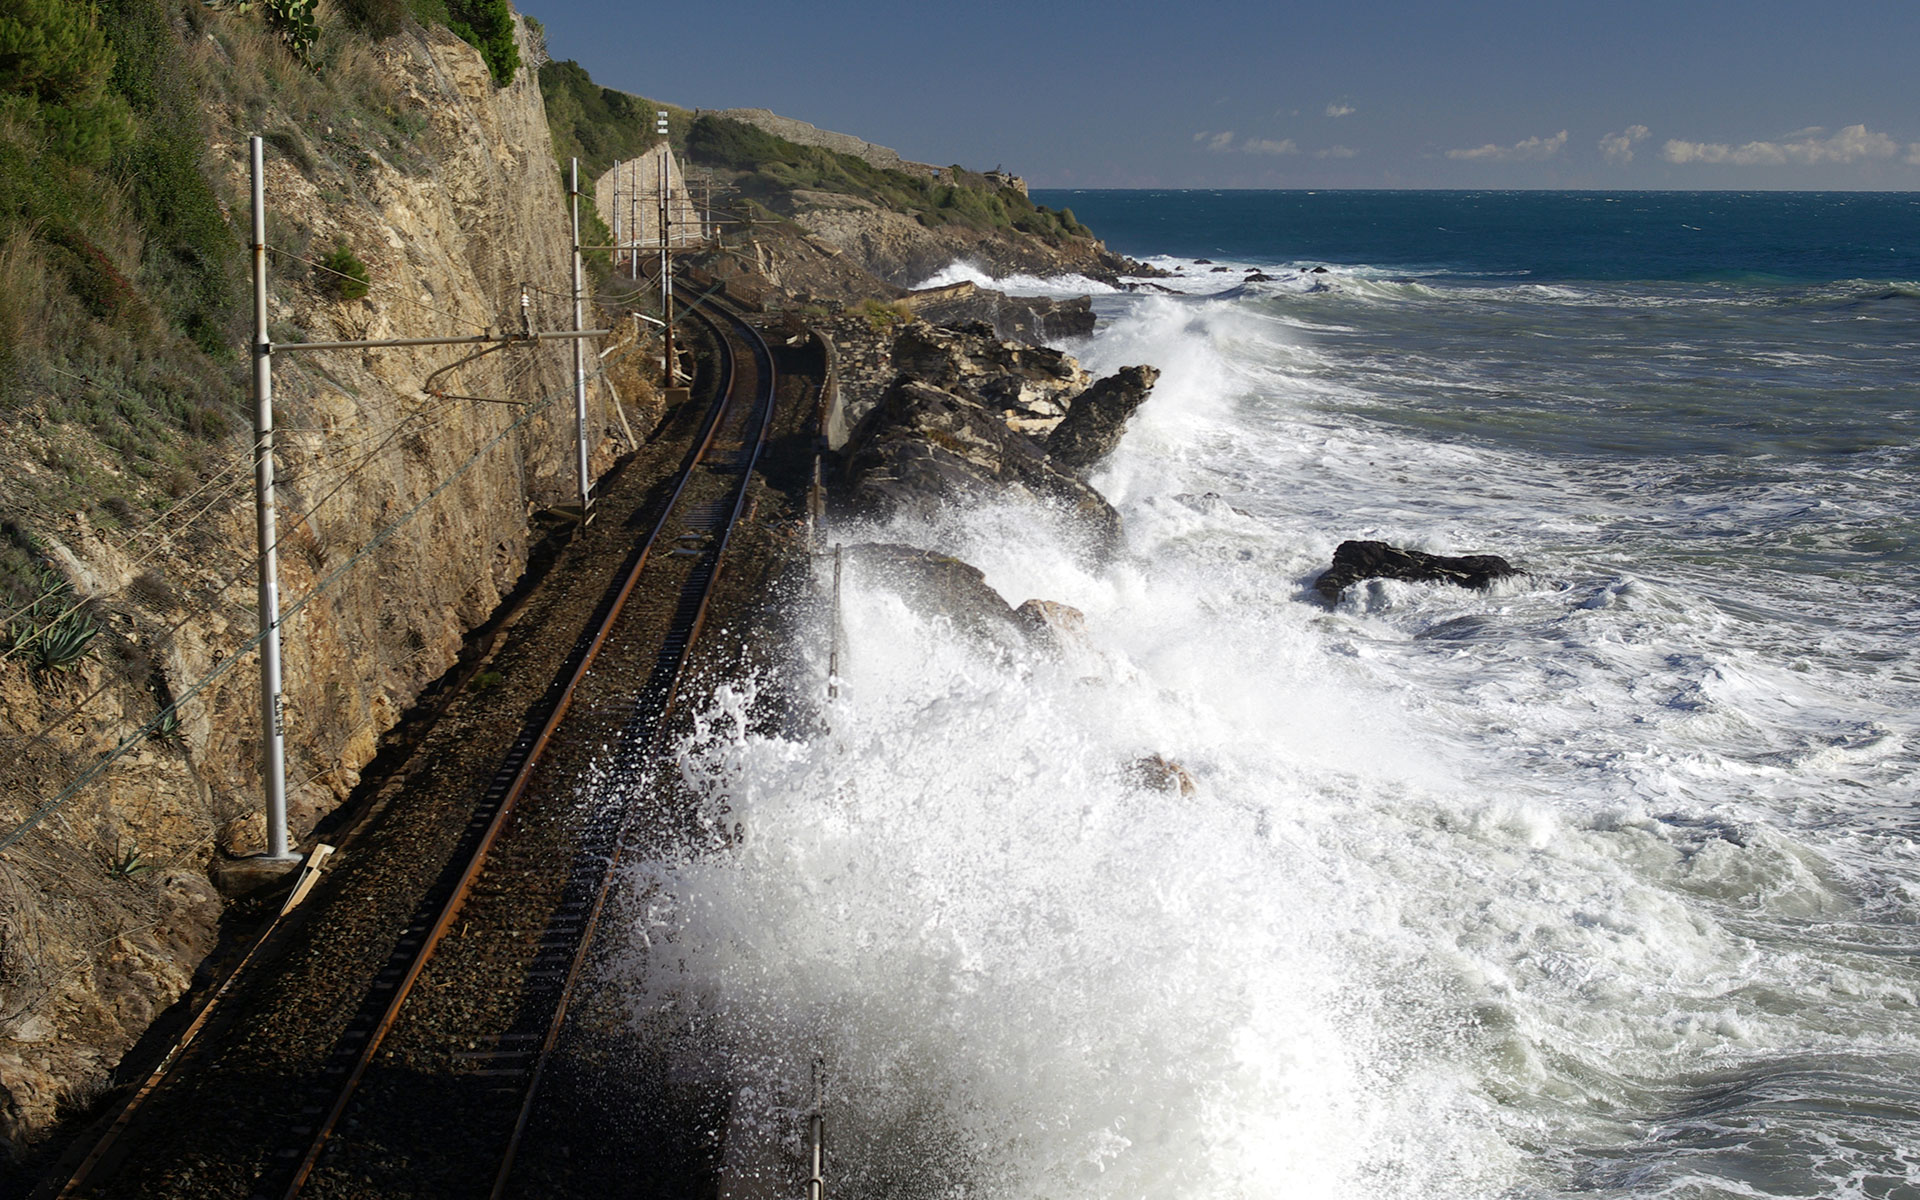 The railway line along the coast of Liguria (photo © Dimitri Surkov).